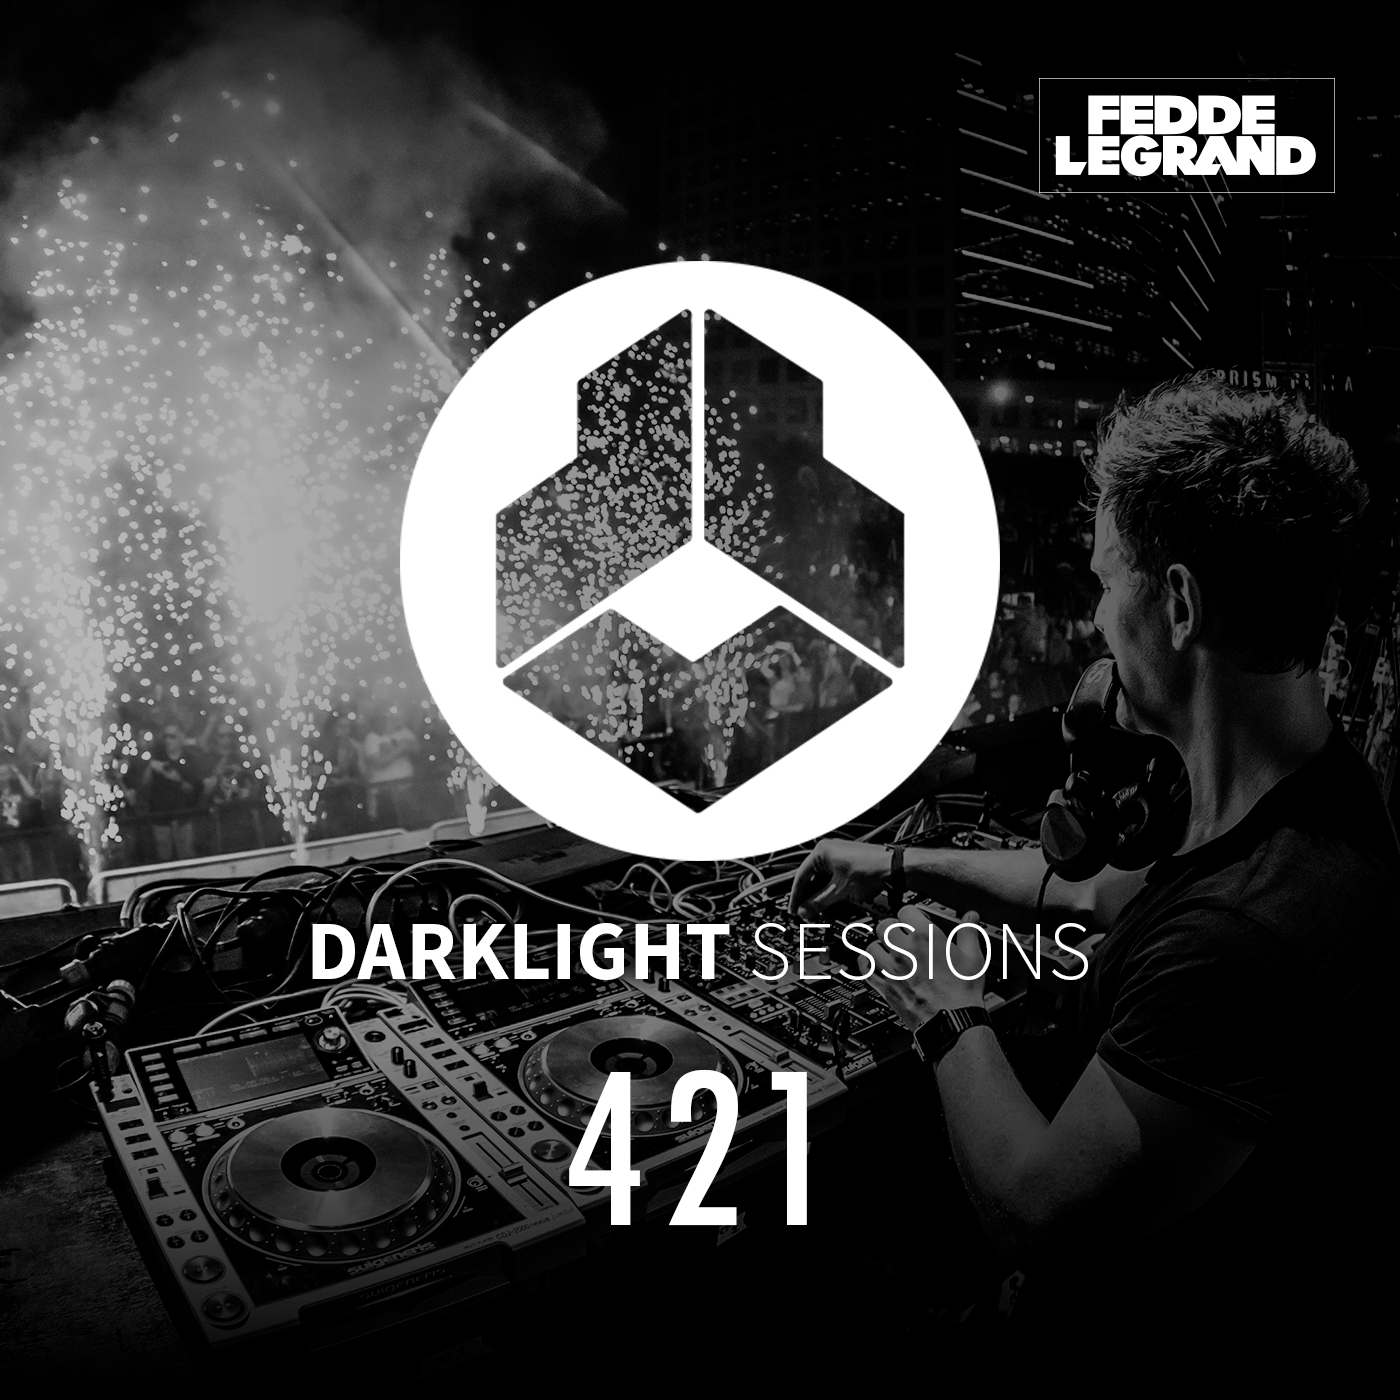 Darklight Sessions 421